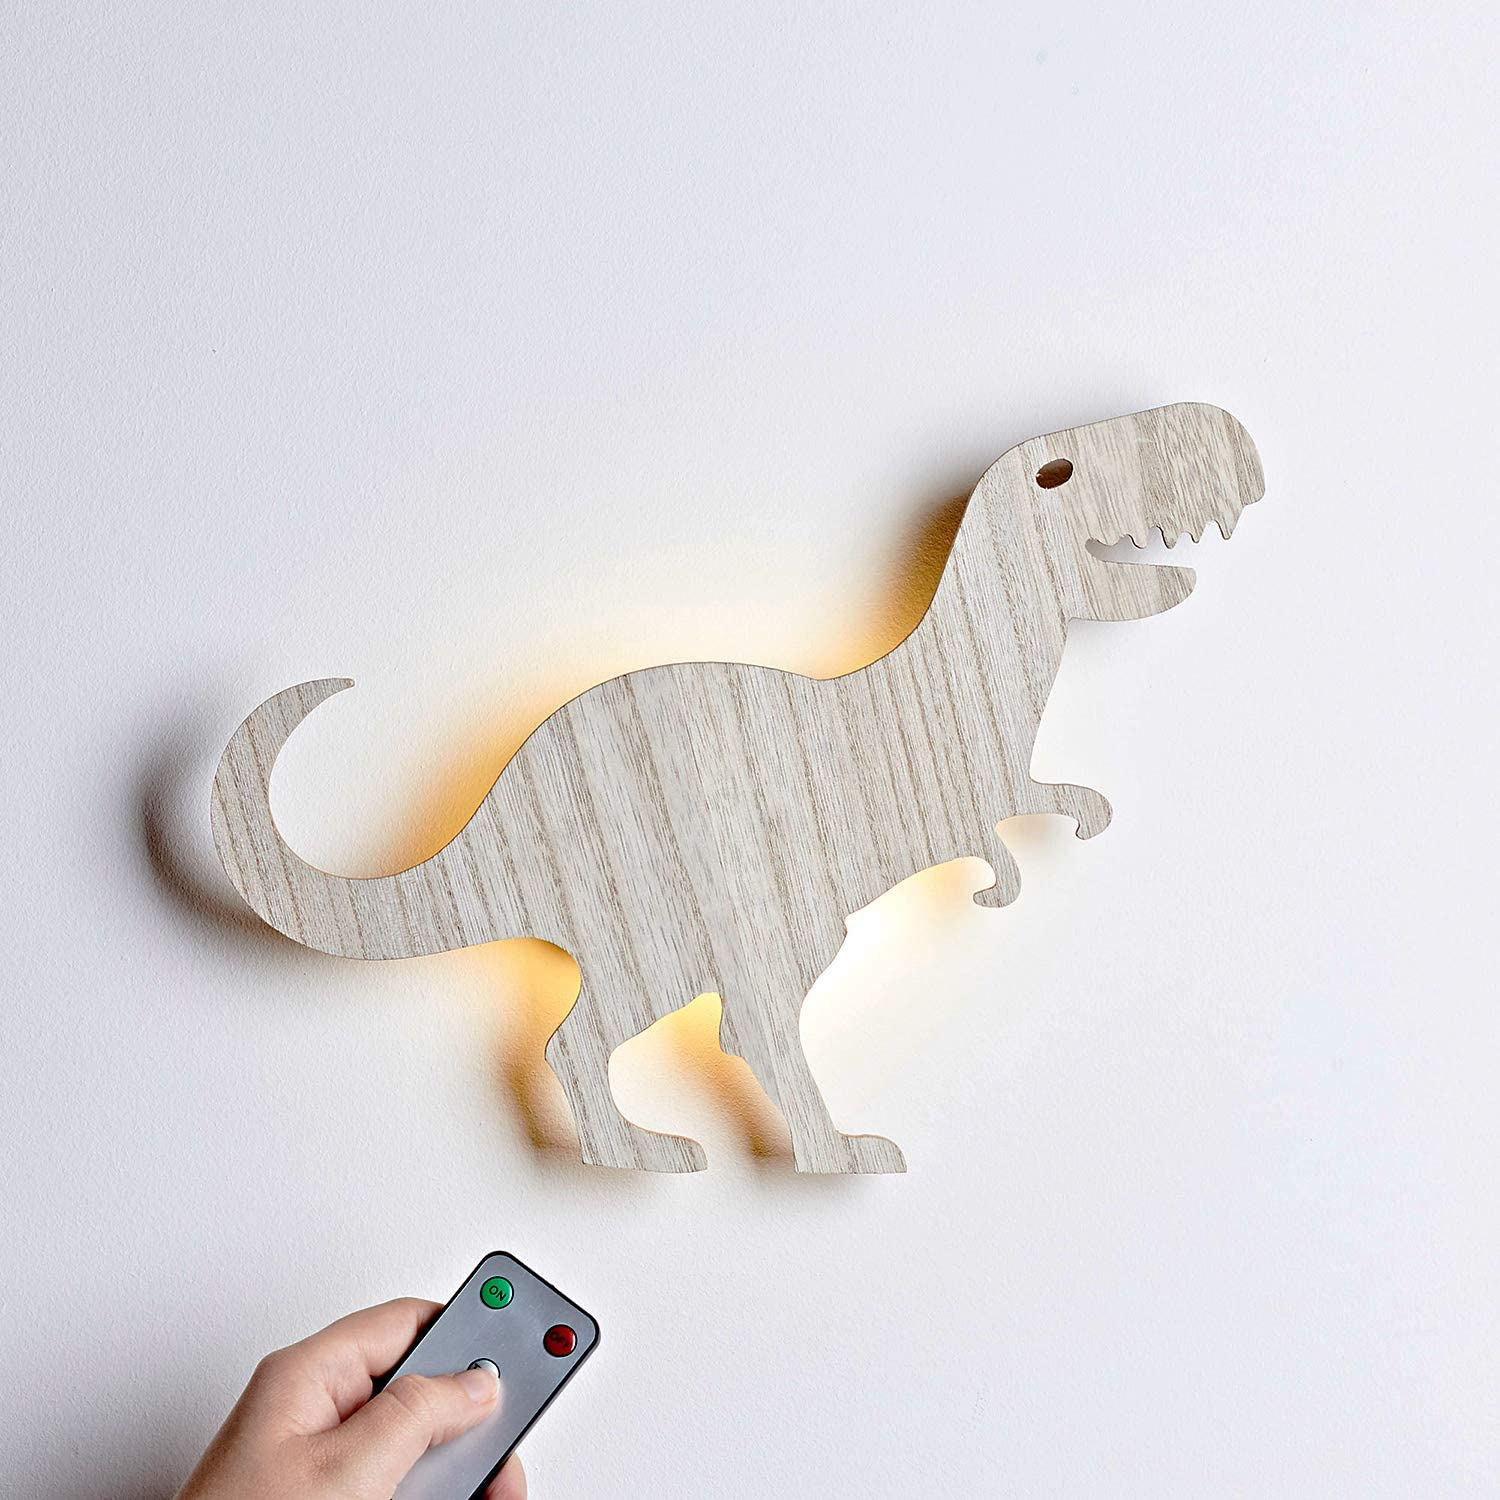 T-Rex Dinosaur Battery Operated LED Bedroom Wall Night Light with Remote Control Inc Lights4fun